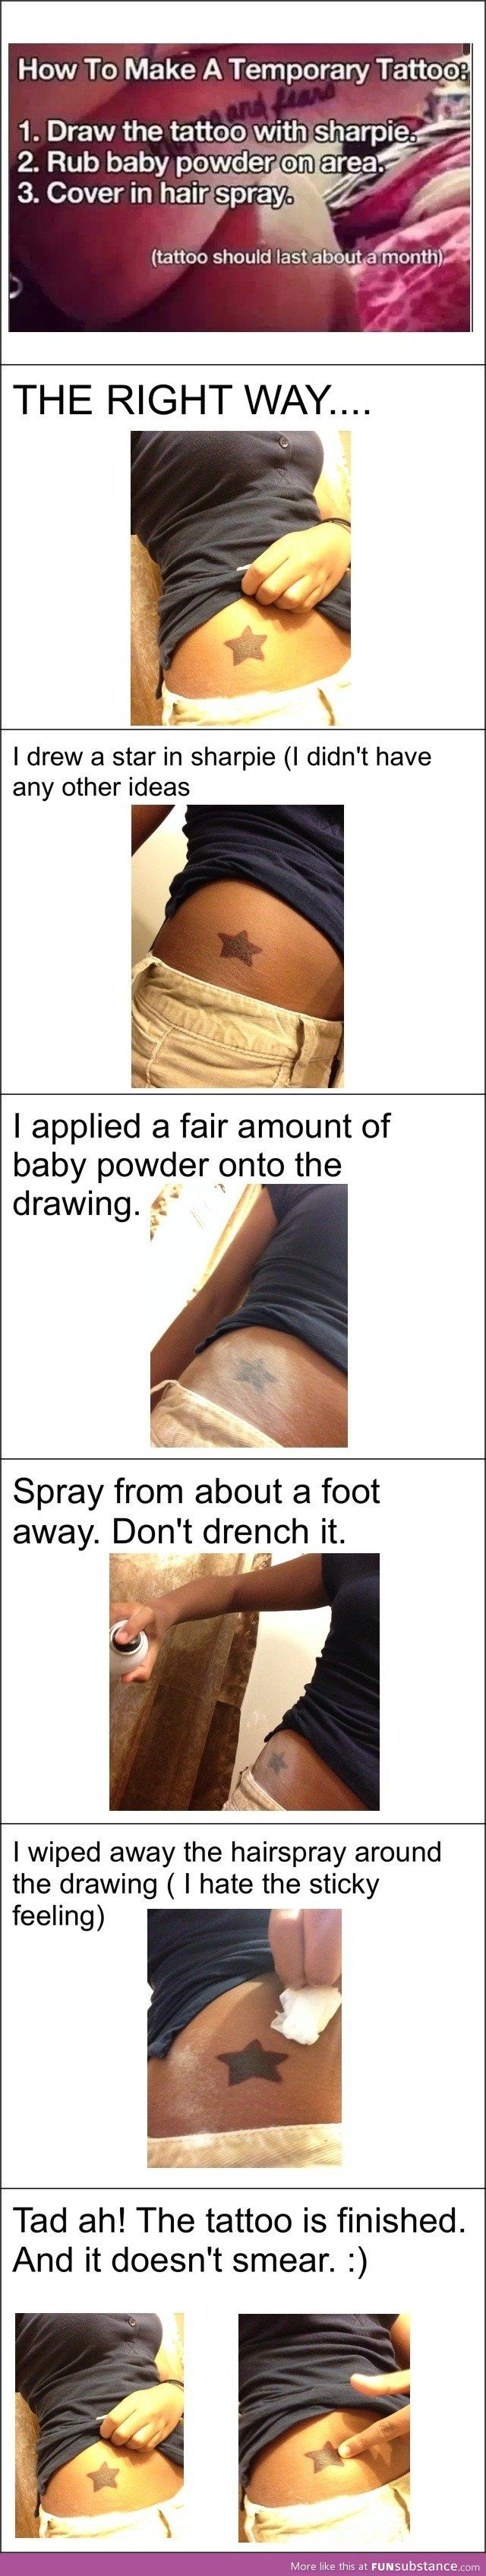 for people who don't want a permanent tattoo, you can make a sharpie tattoo that lasts a month!